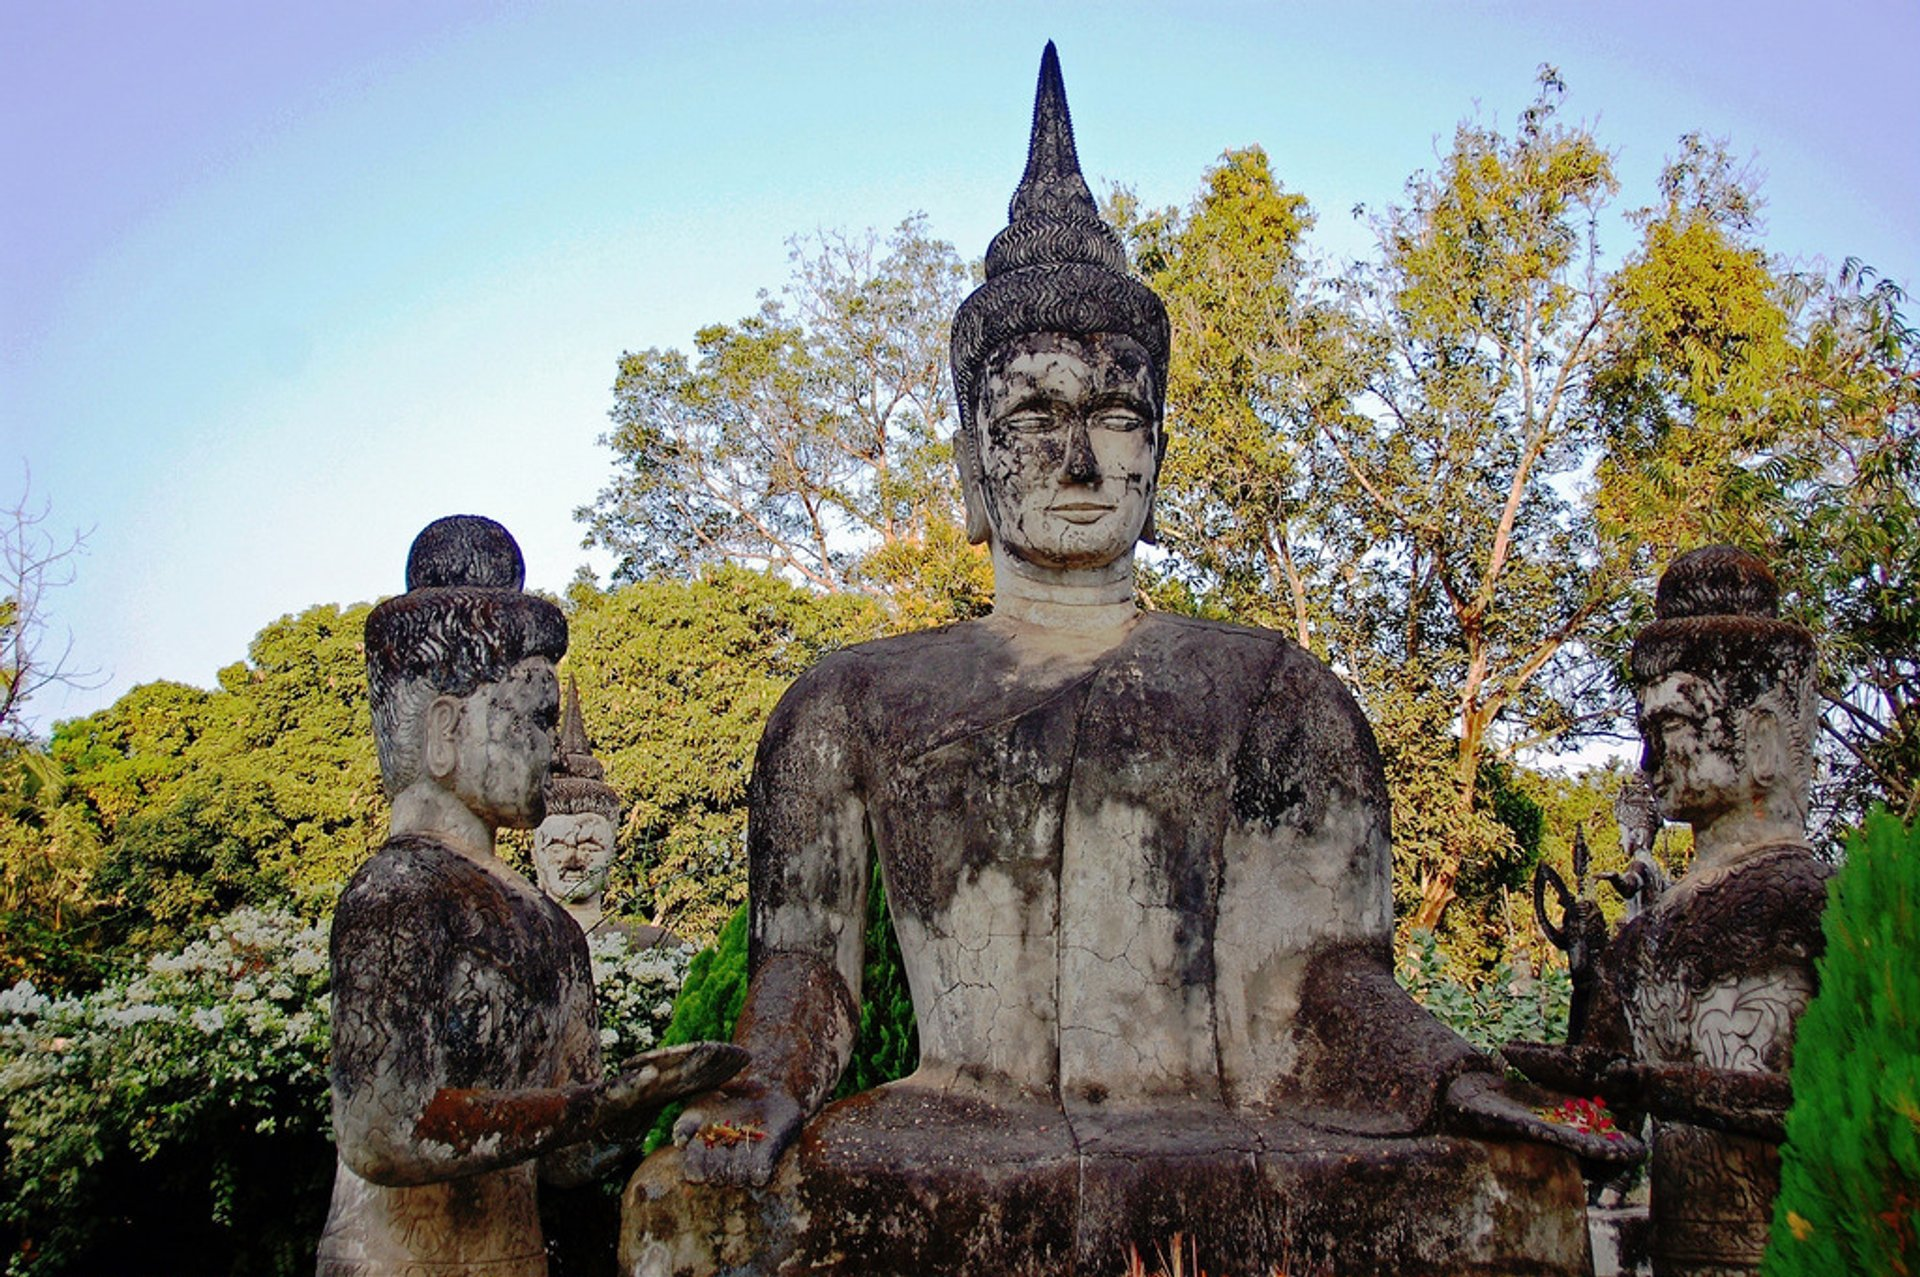 Best time to see Xieng Khuan or Buddha Park in Laos 2020